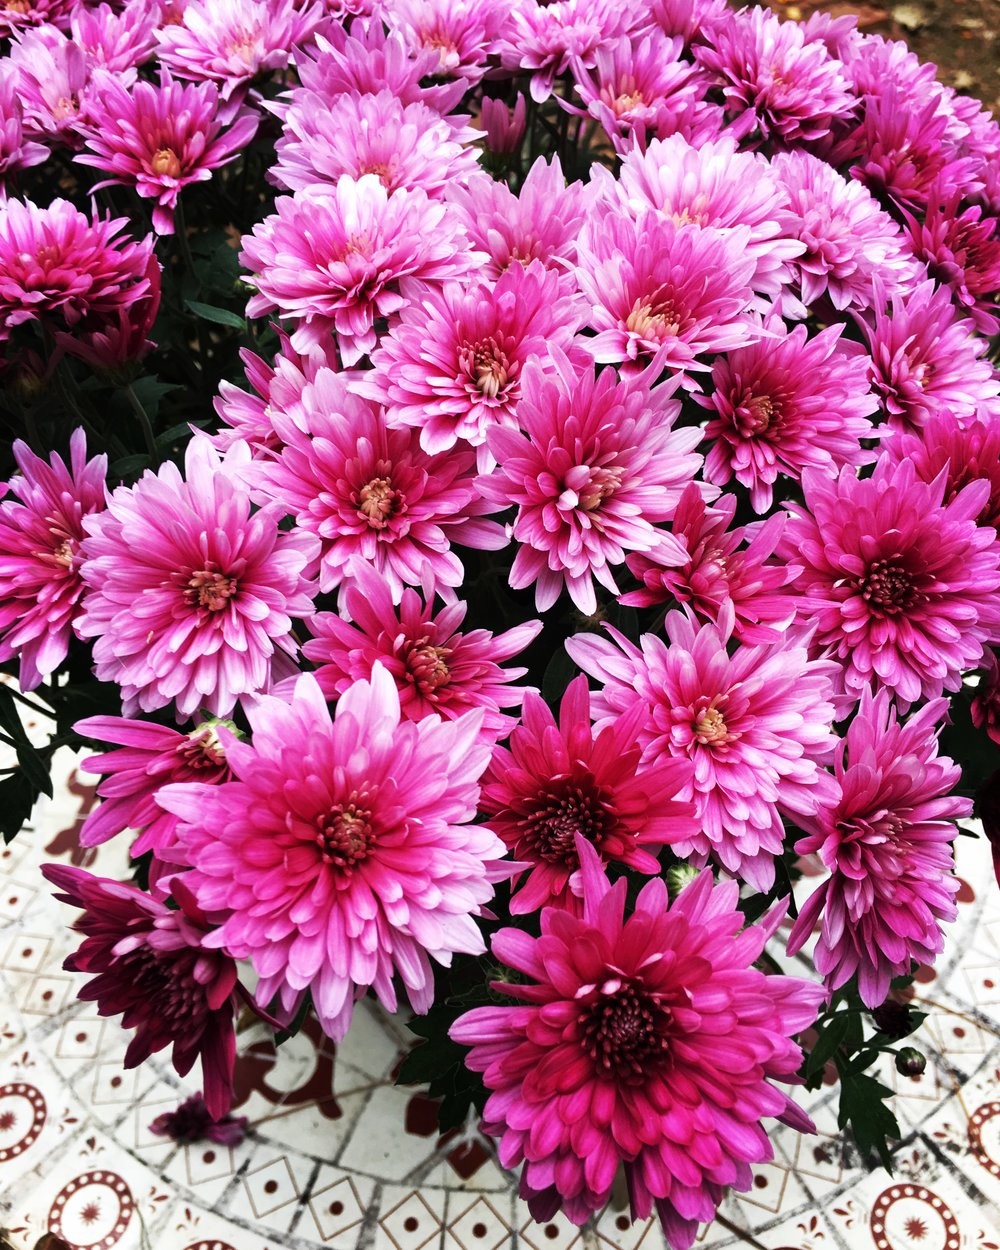 Okay, it took me weeks to post this because I keep going back to it. I needed it to have a happy ending or at least a moral. But, oh, wait. That's what this blog is about; it's about me not needing to supplement everything with goodness. Instead, here is a picture I took of some mums.